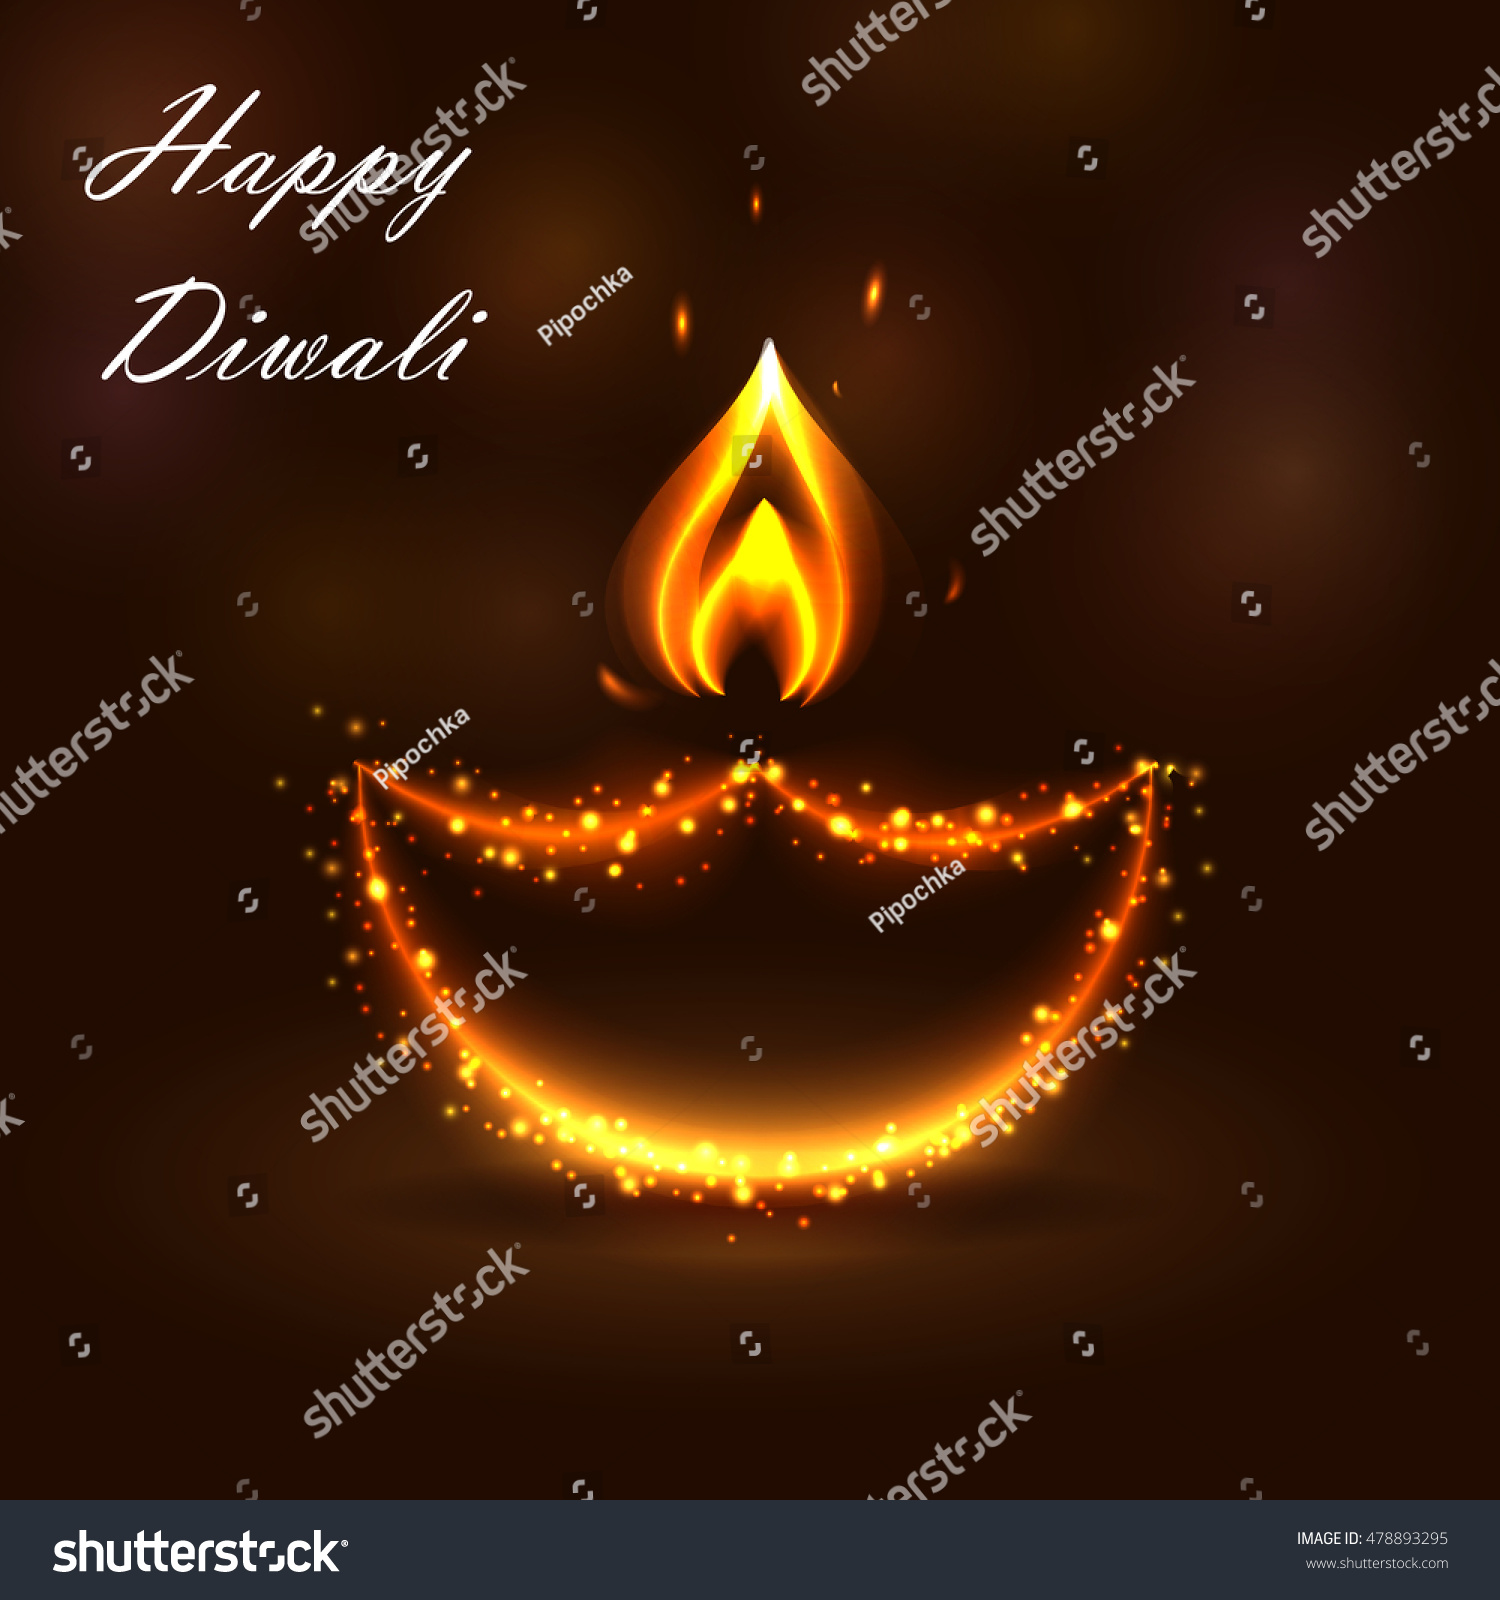 Happy Diwali Festival Background Beautiful Burning Stock Vector